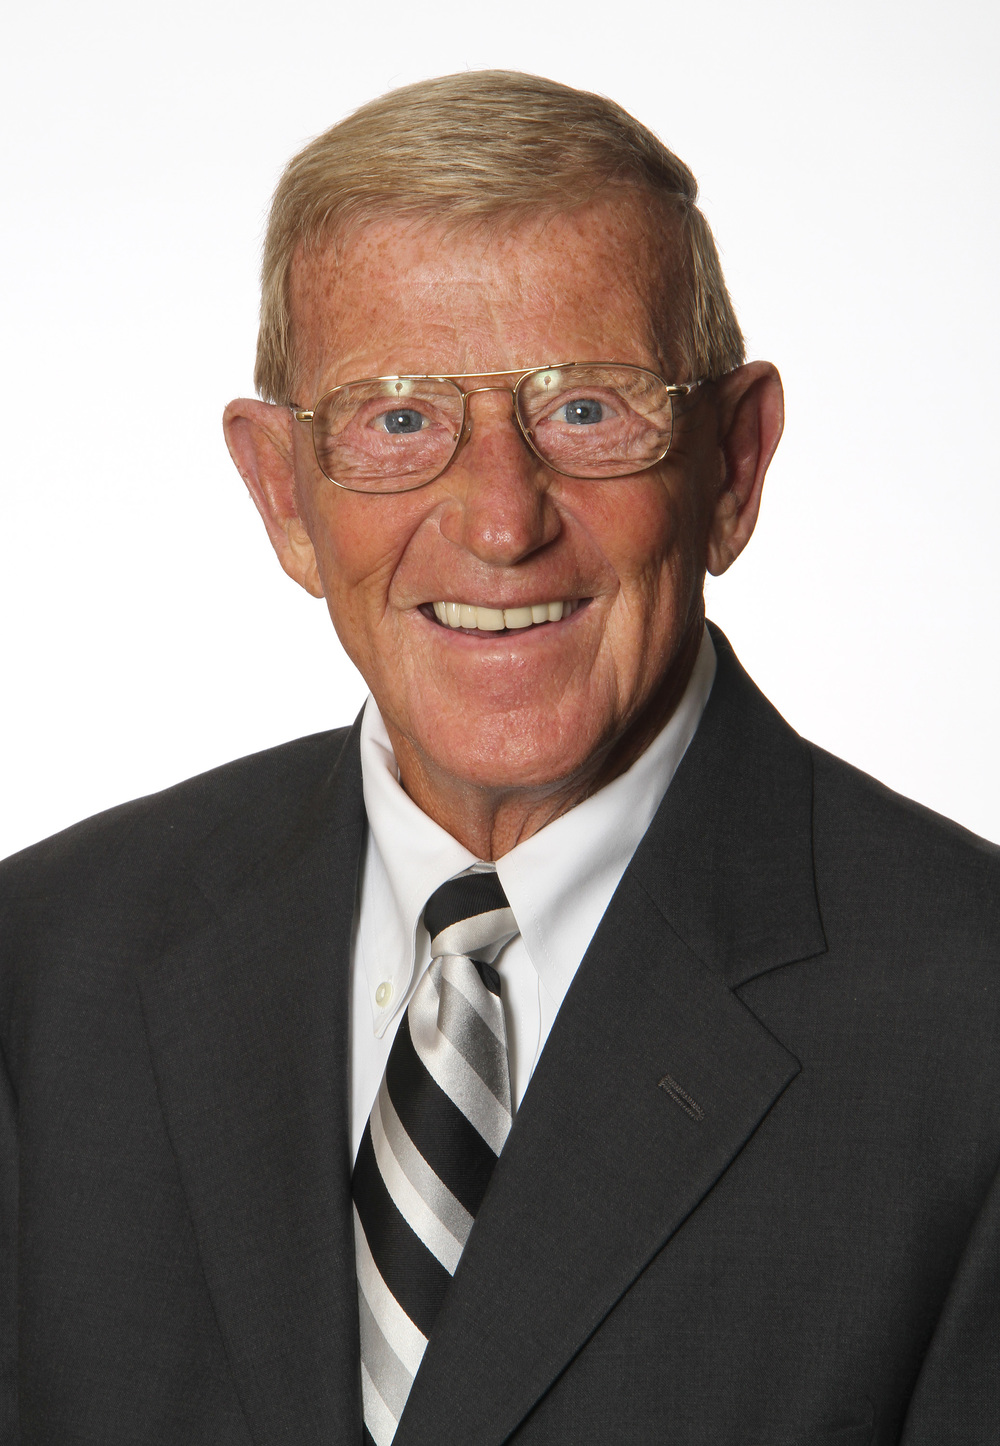 May 1 Leadership Nugget - Lou Holtz - Mistakes